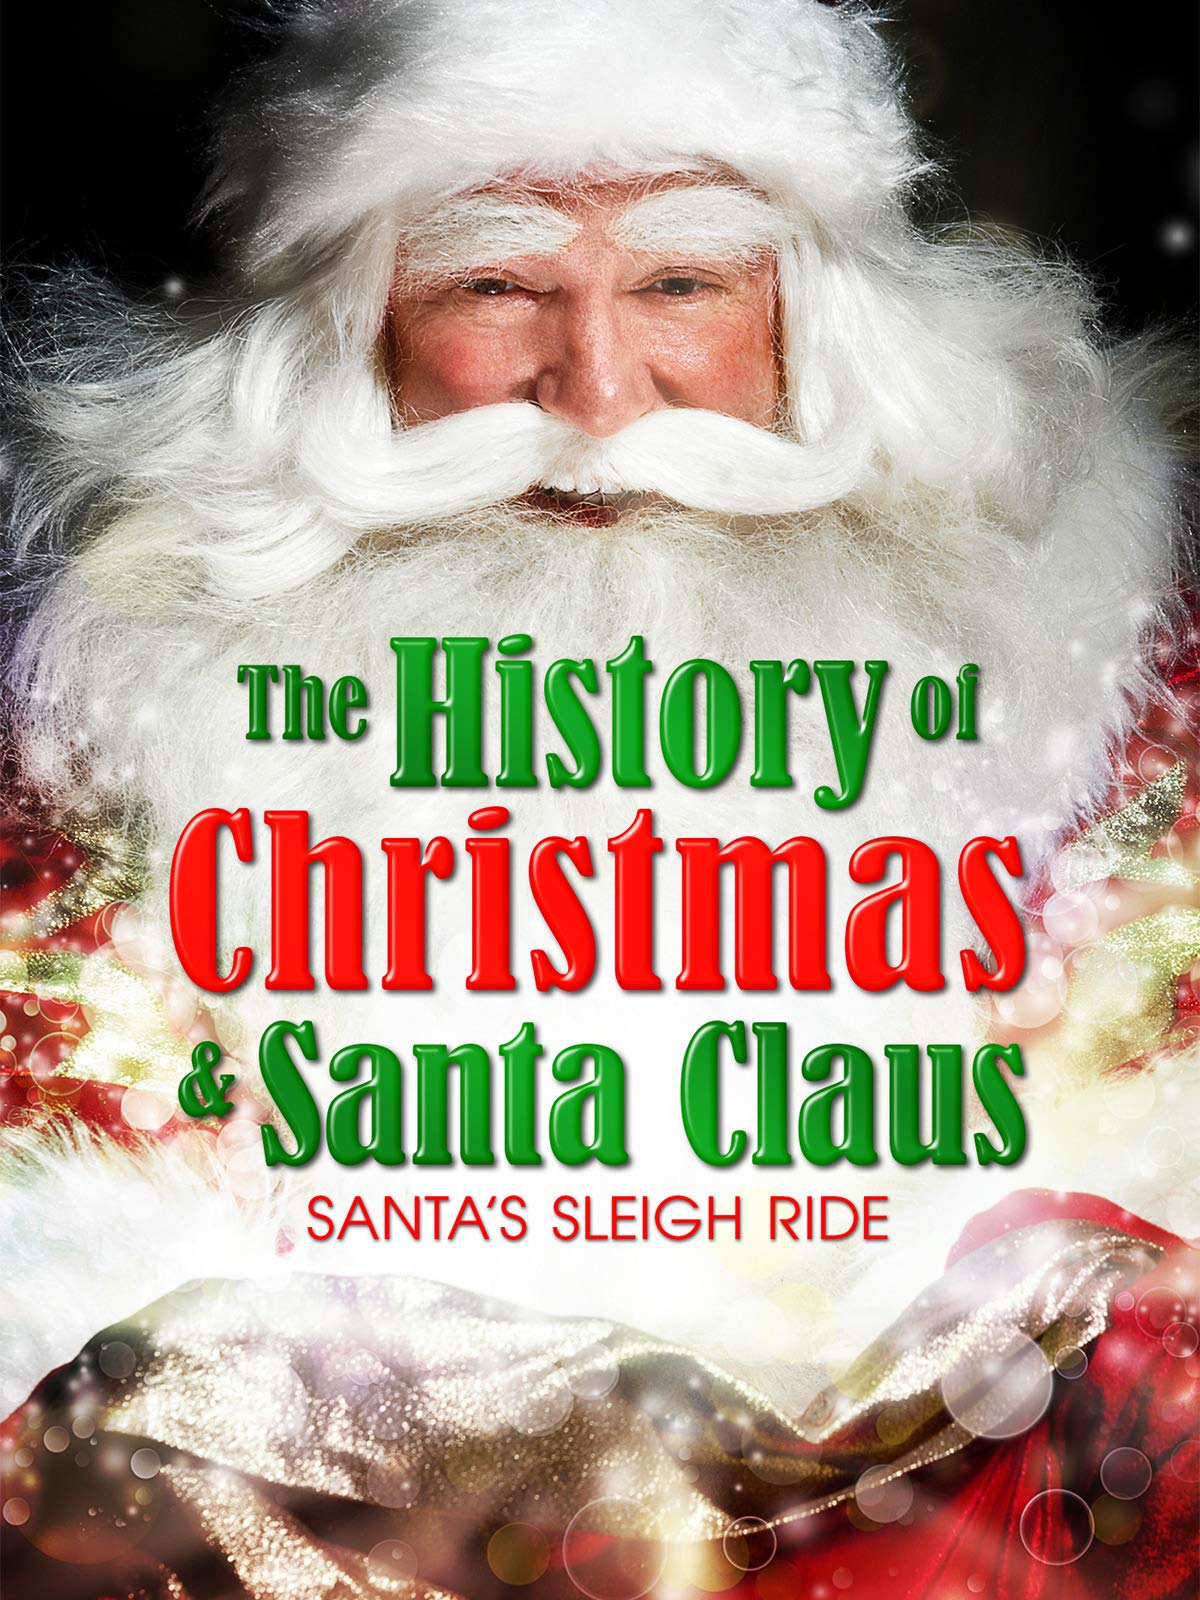 The History of Christmas & Santa Claus: Santa's Sleigh Ride on Amazon Prime Video UK